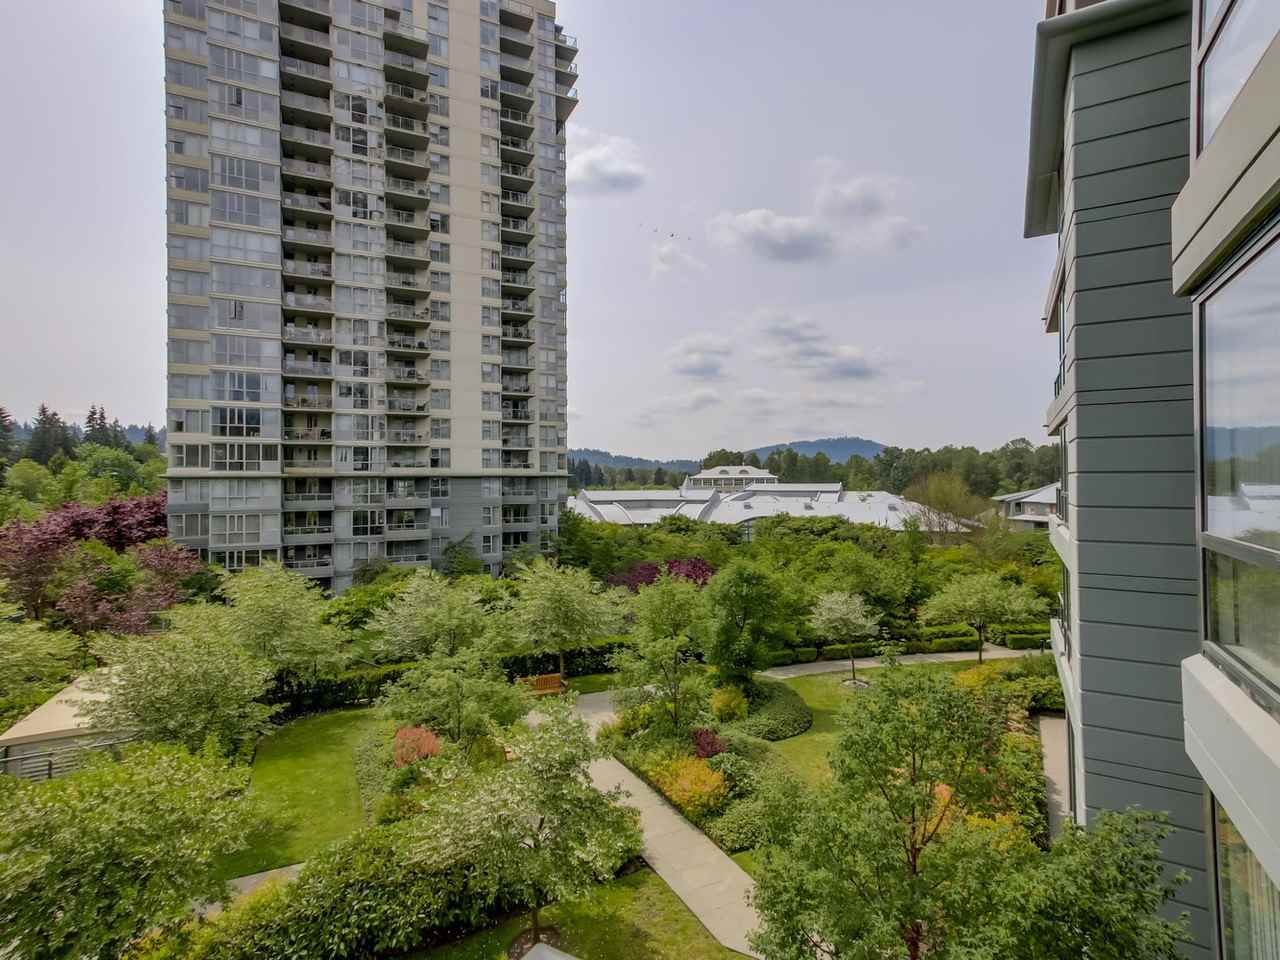 Photo 18: 203 288 UNGLESS WAY in Port Moody: Port Moody Centre Condo for sale : MLS(r) # R2071333